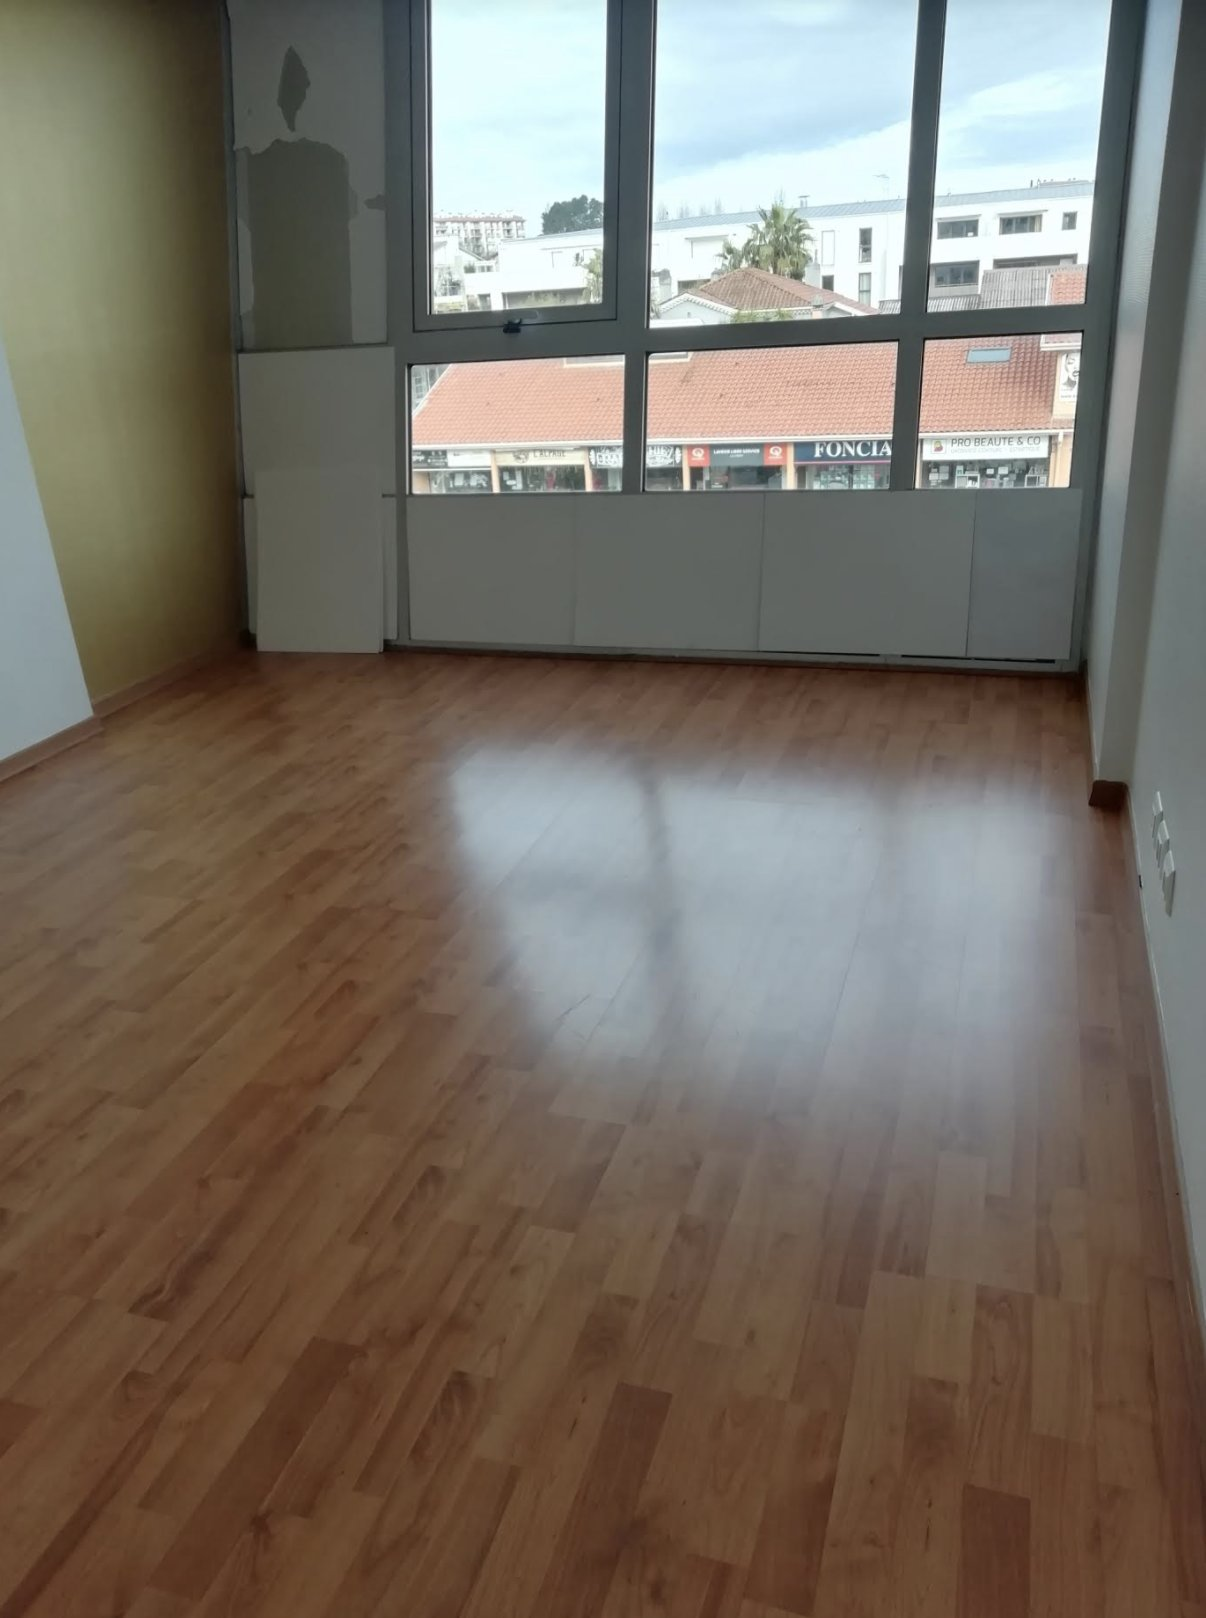 Local, office for rent Anglet